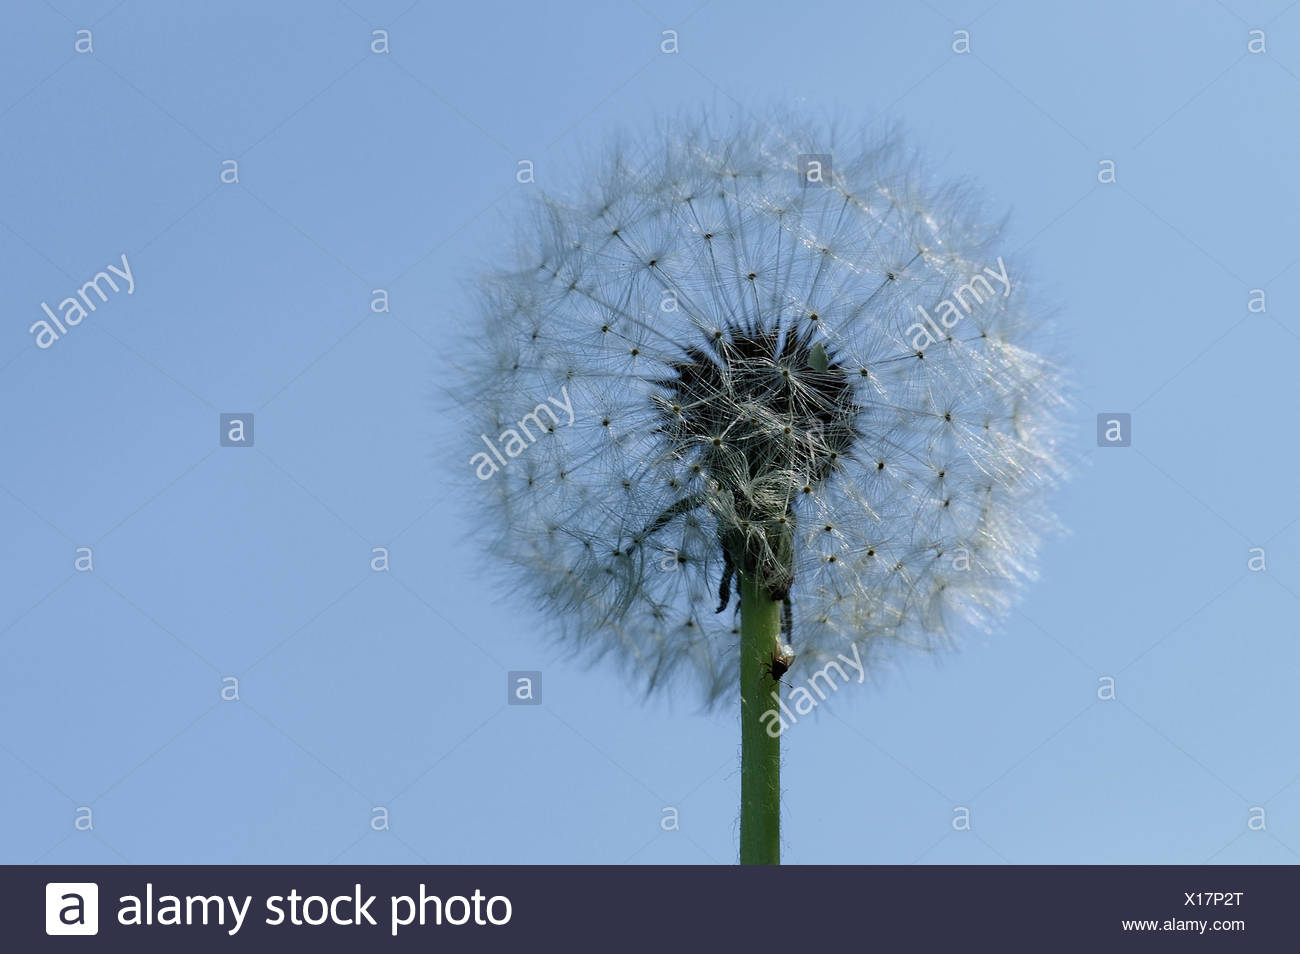 Bild Pusteblume Pusteblume With Fly Stock Photo 276151536 Alamy